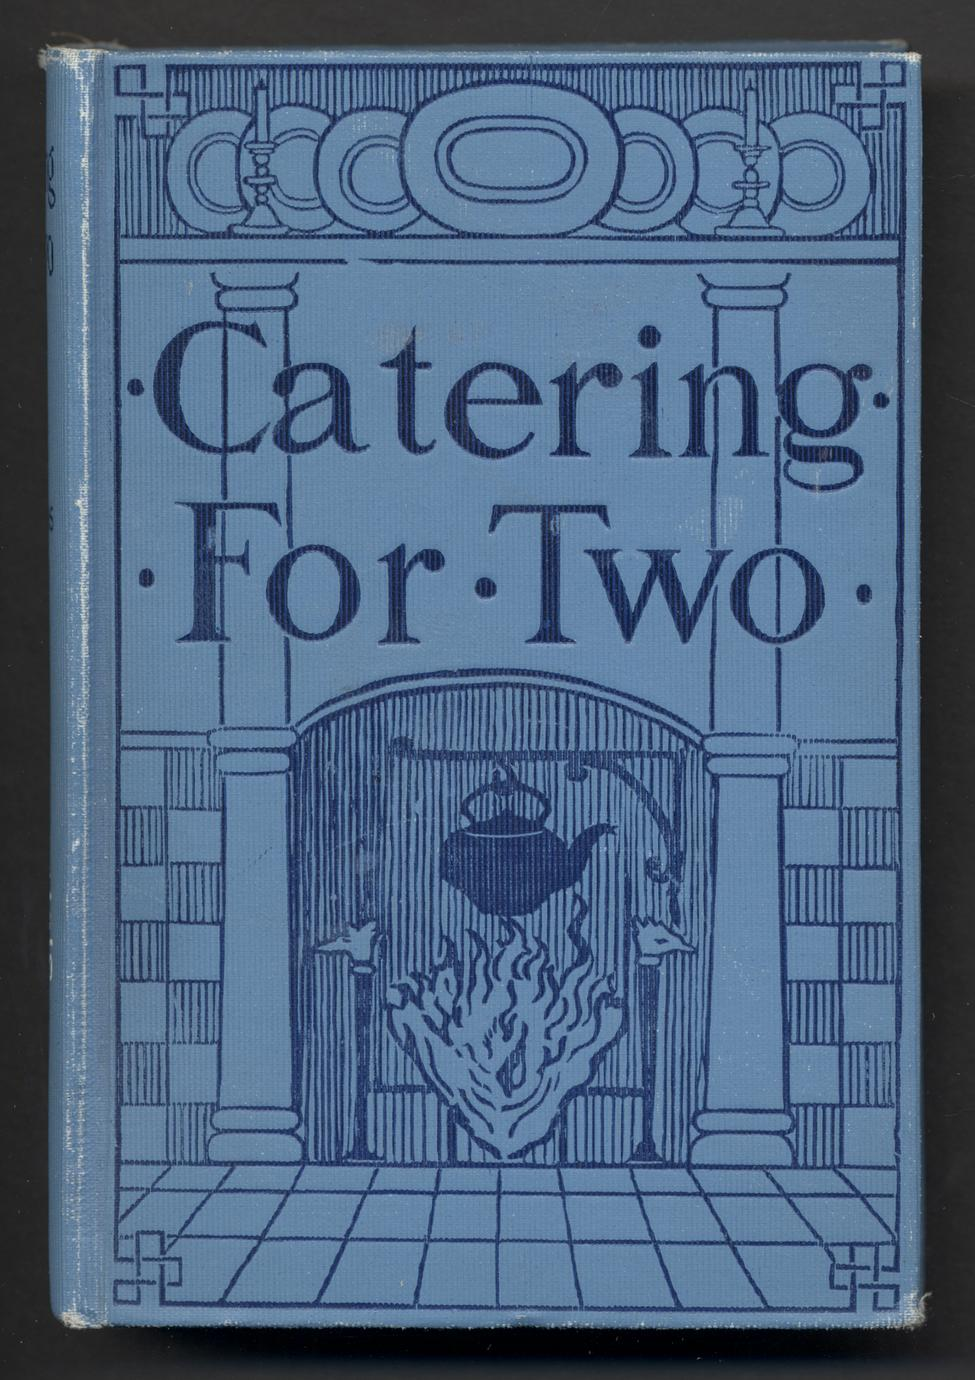 Catering for two (1 of 2)